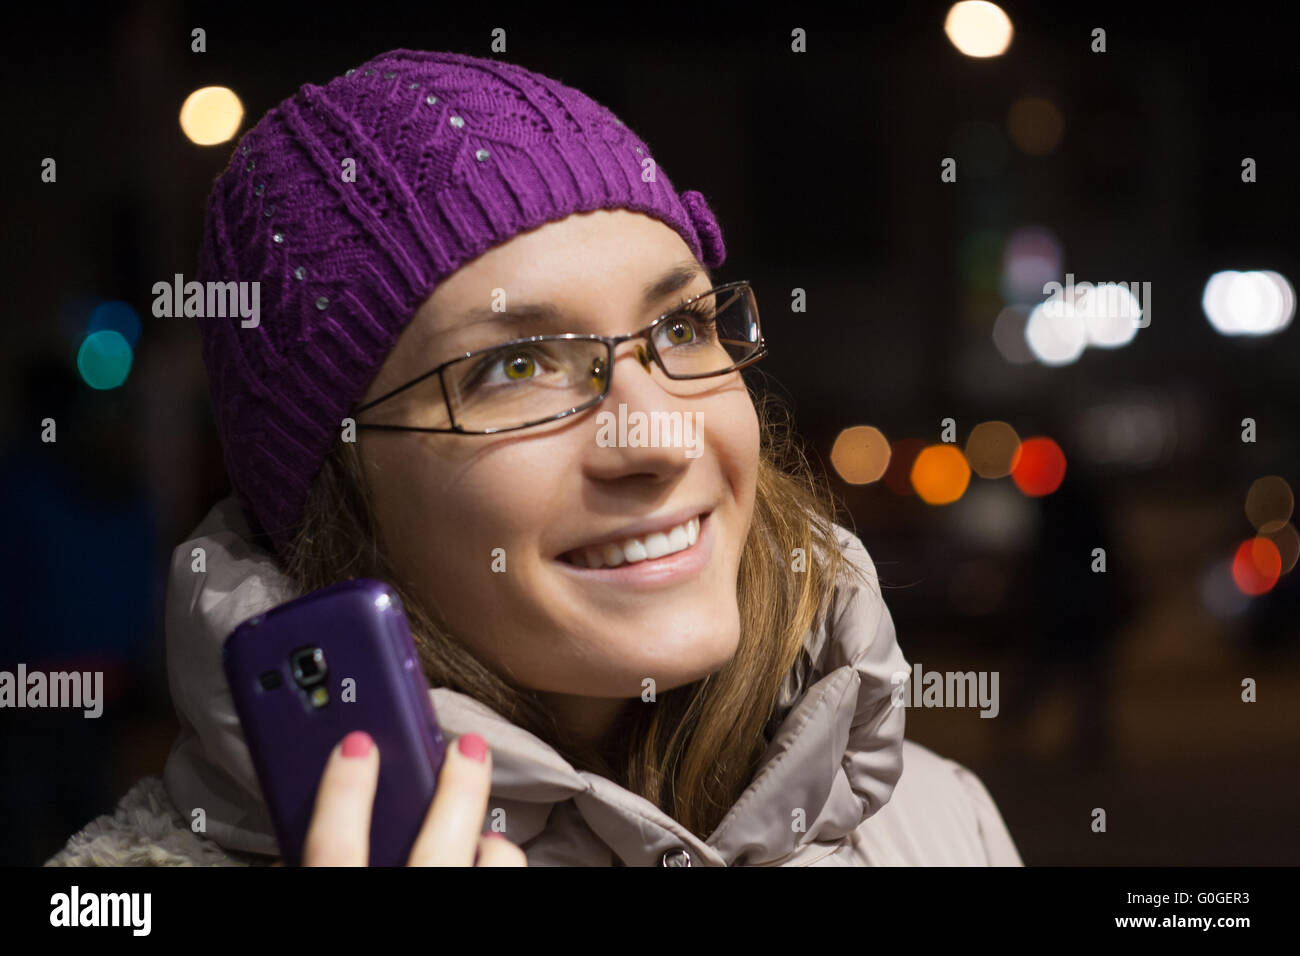 Young woman girl with cell phone mobile in winter or fall outdoors - Stock Image